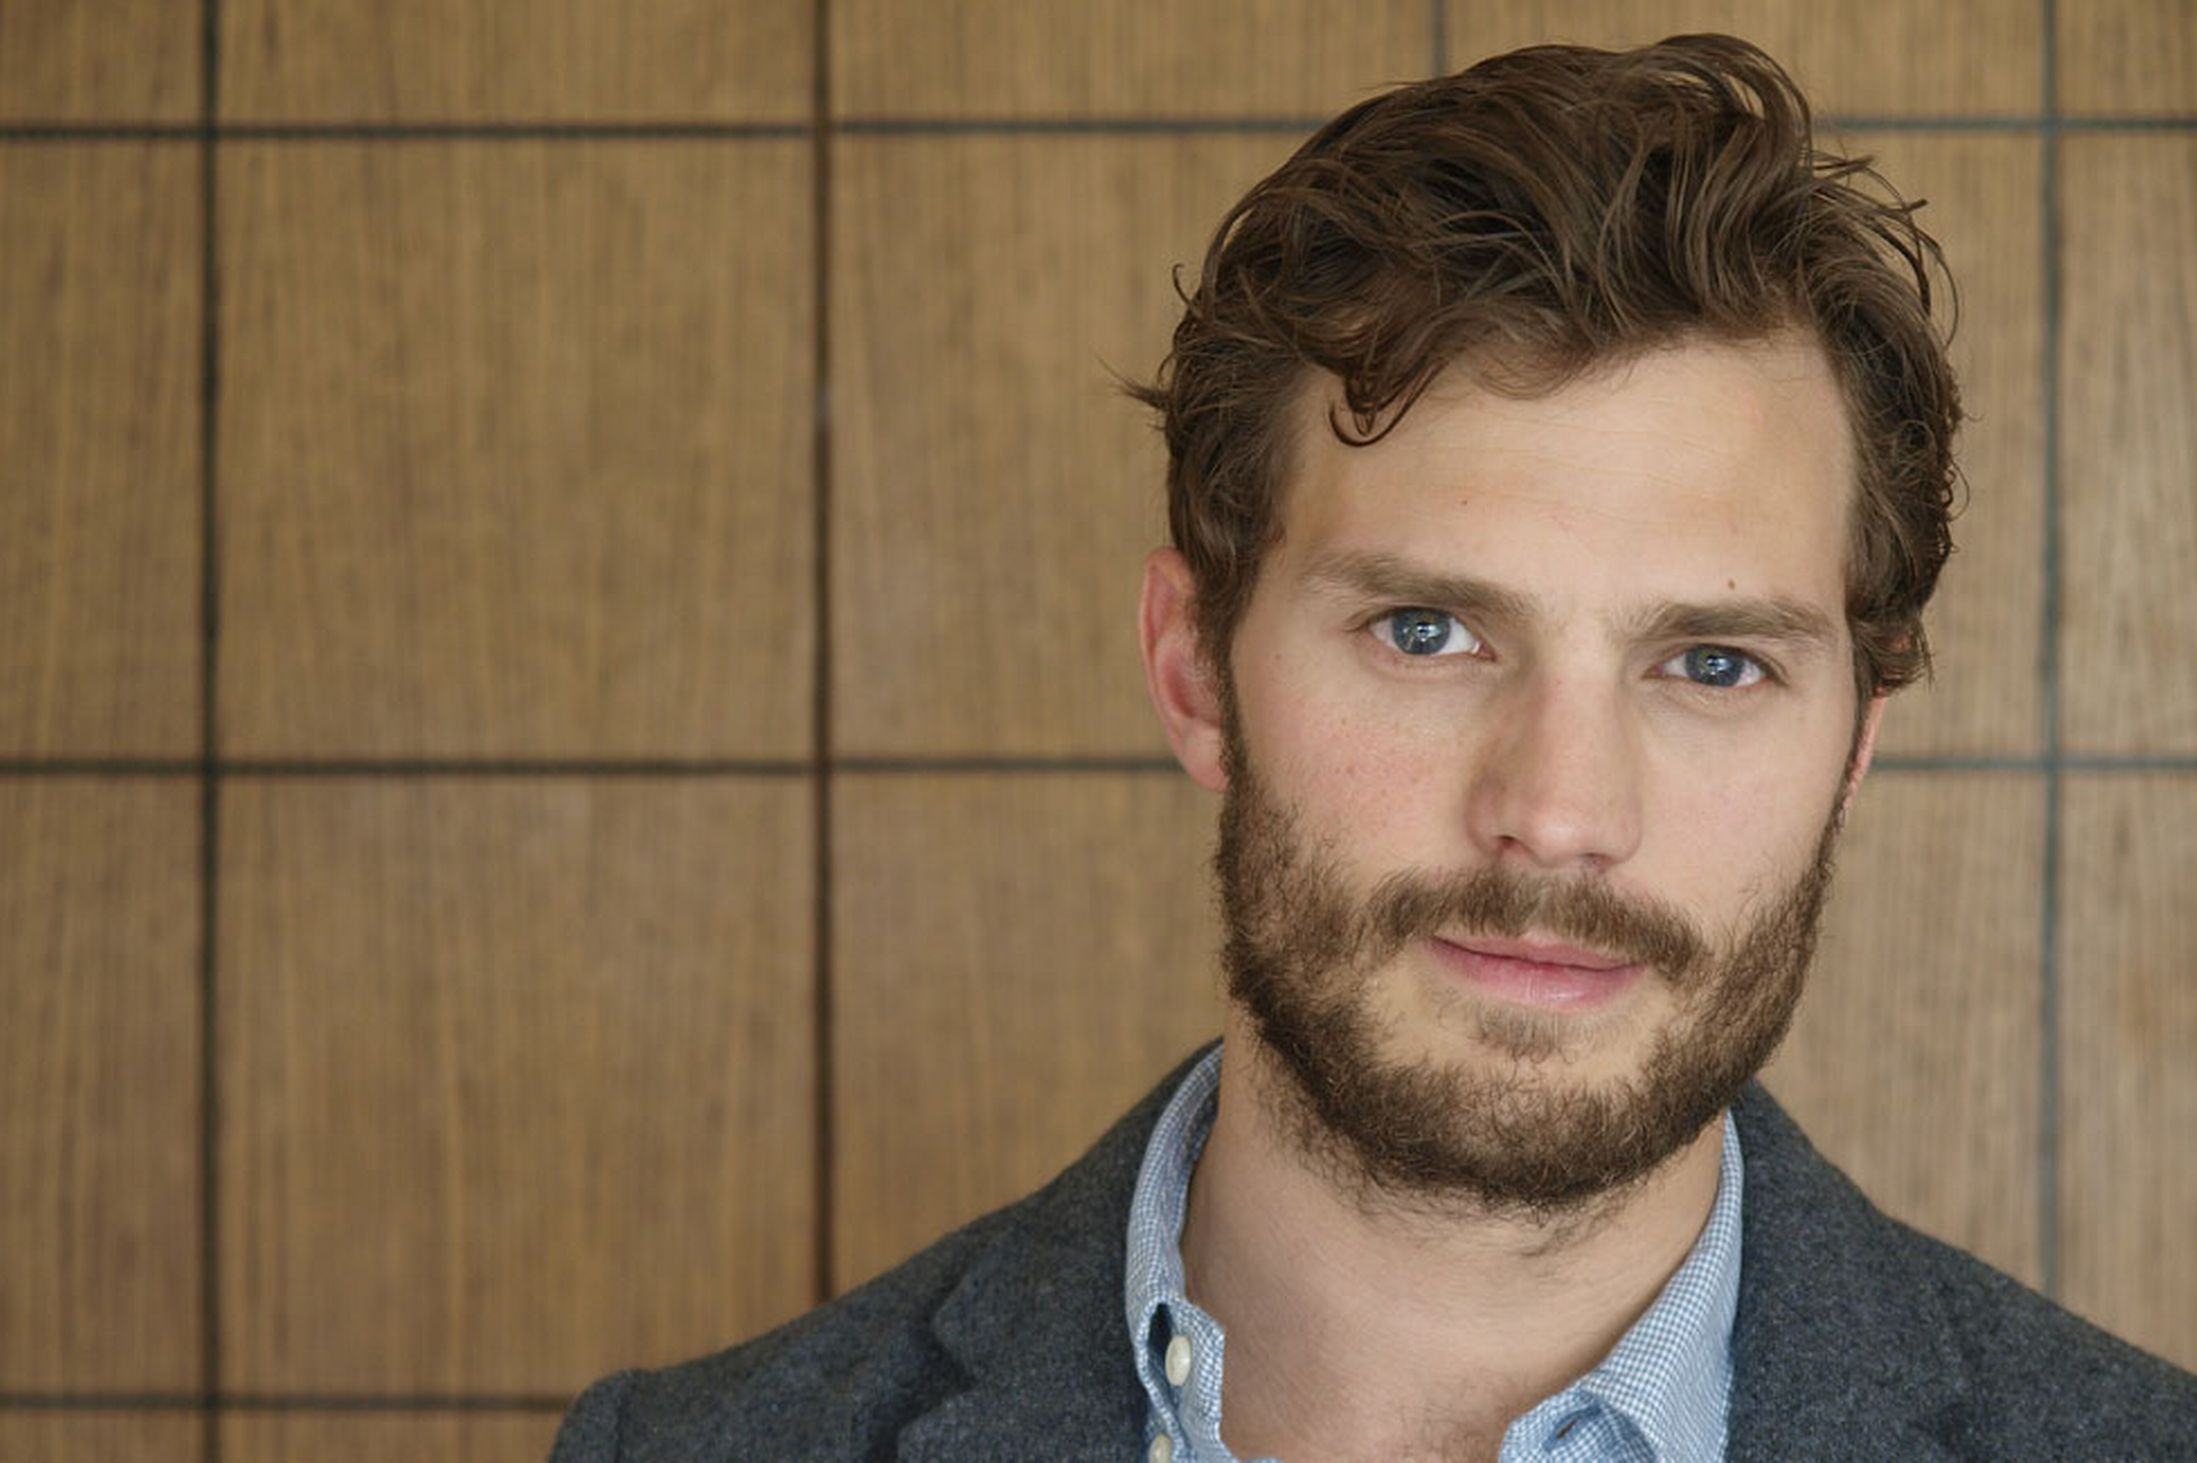 10-things-you-didnt-know-about-fifty-shades-of-grey 10 Things You Didn't Know About Fifty Shades of Grey 10 Things You Didn't Know About Fifty Shades of Grey Jamie Dornan